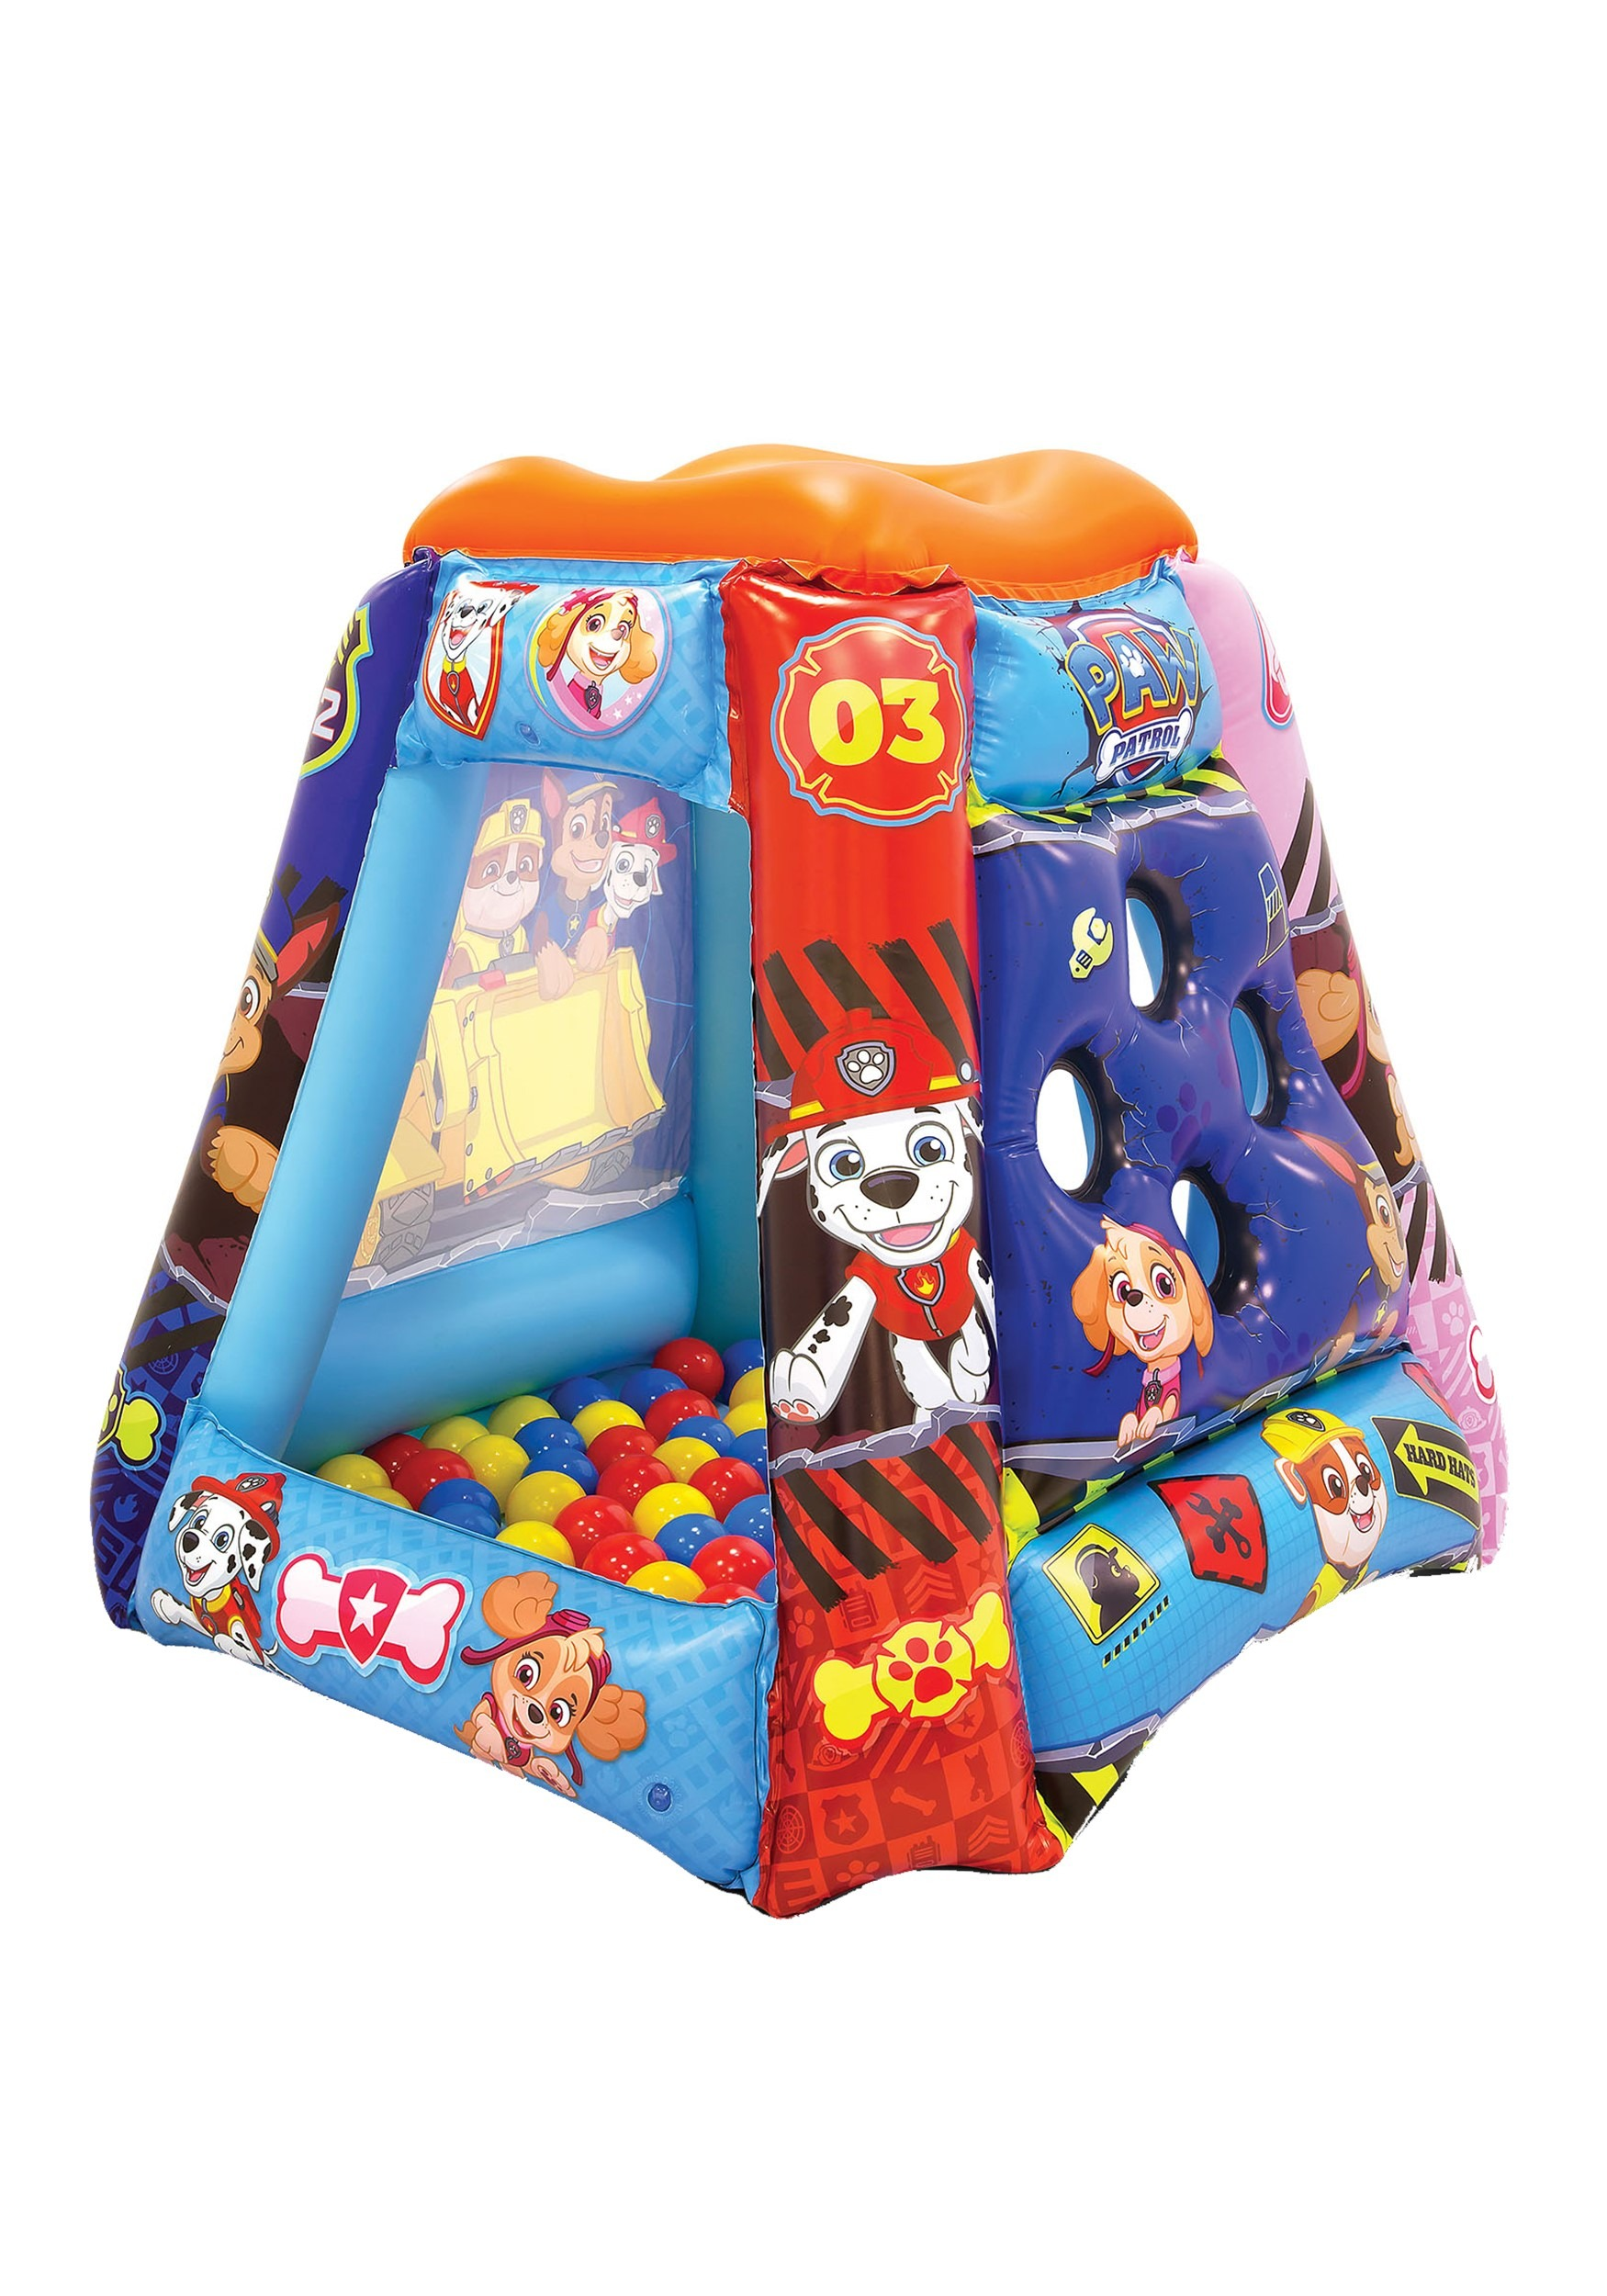 Paw Patrol Playland with 20 Balls for Kids